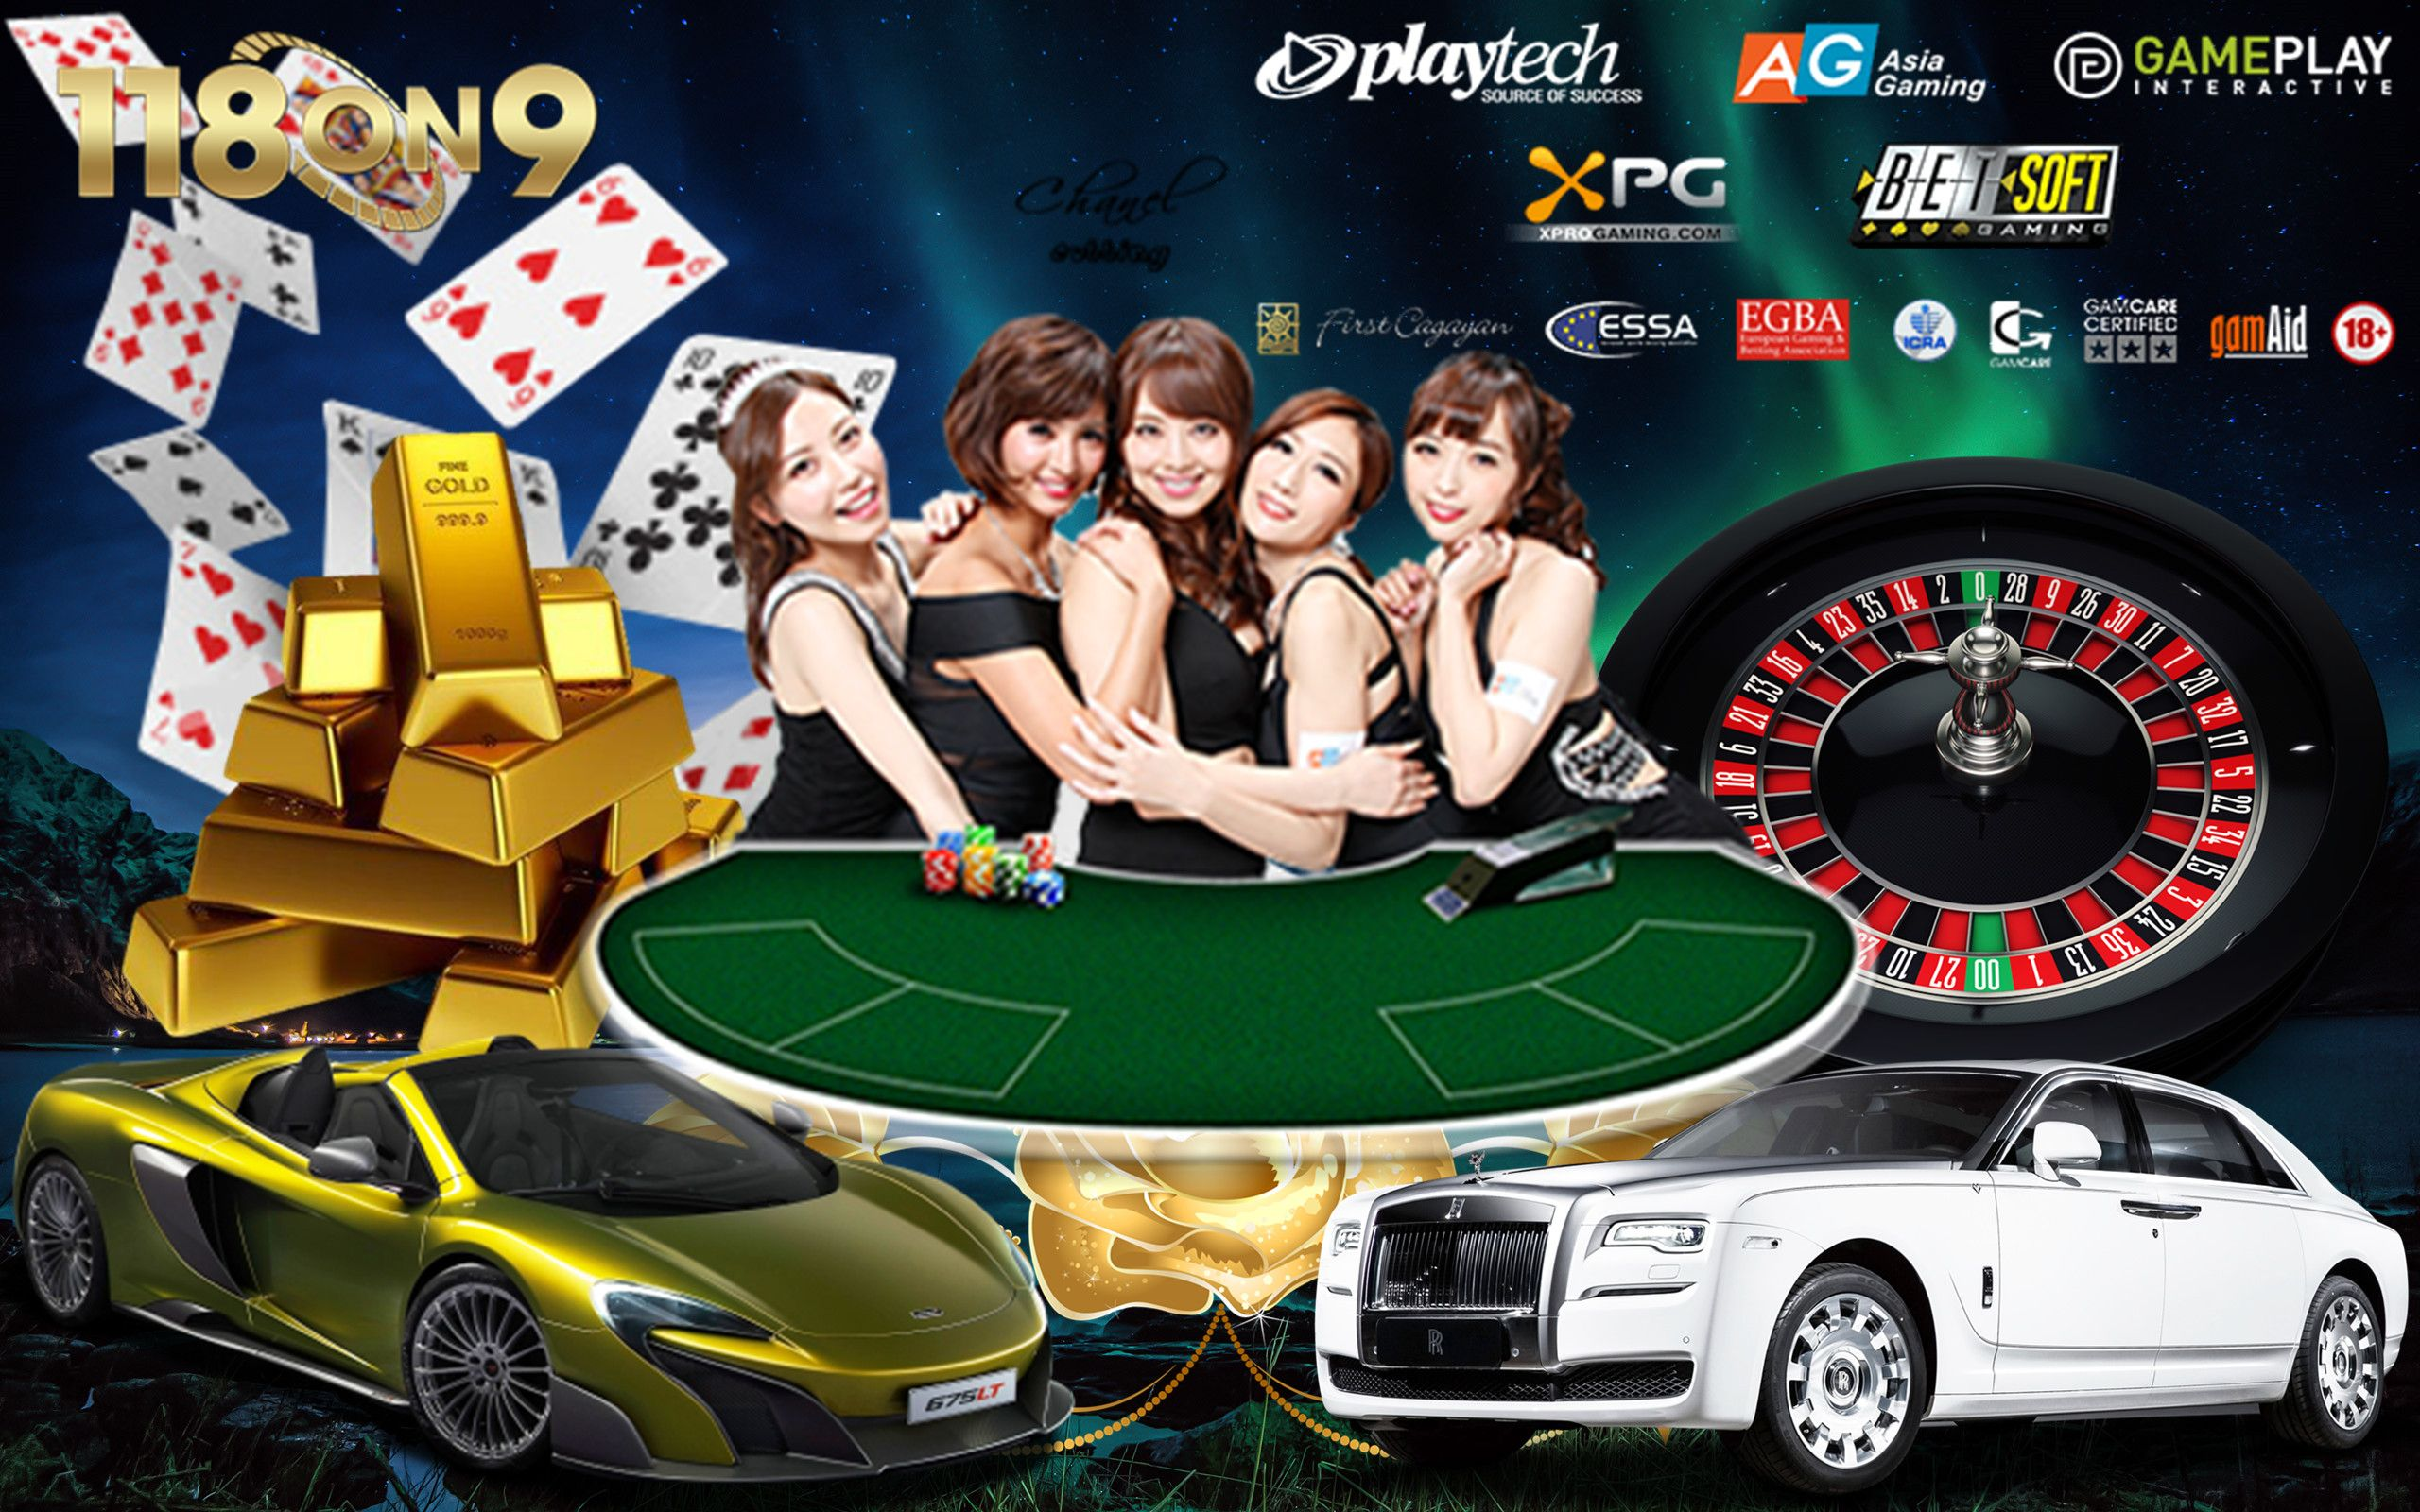 Explosive Fun at 118ON9, an Online Casino in